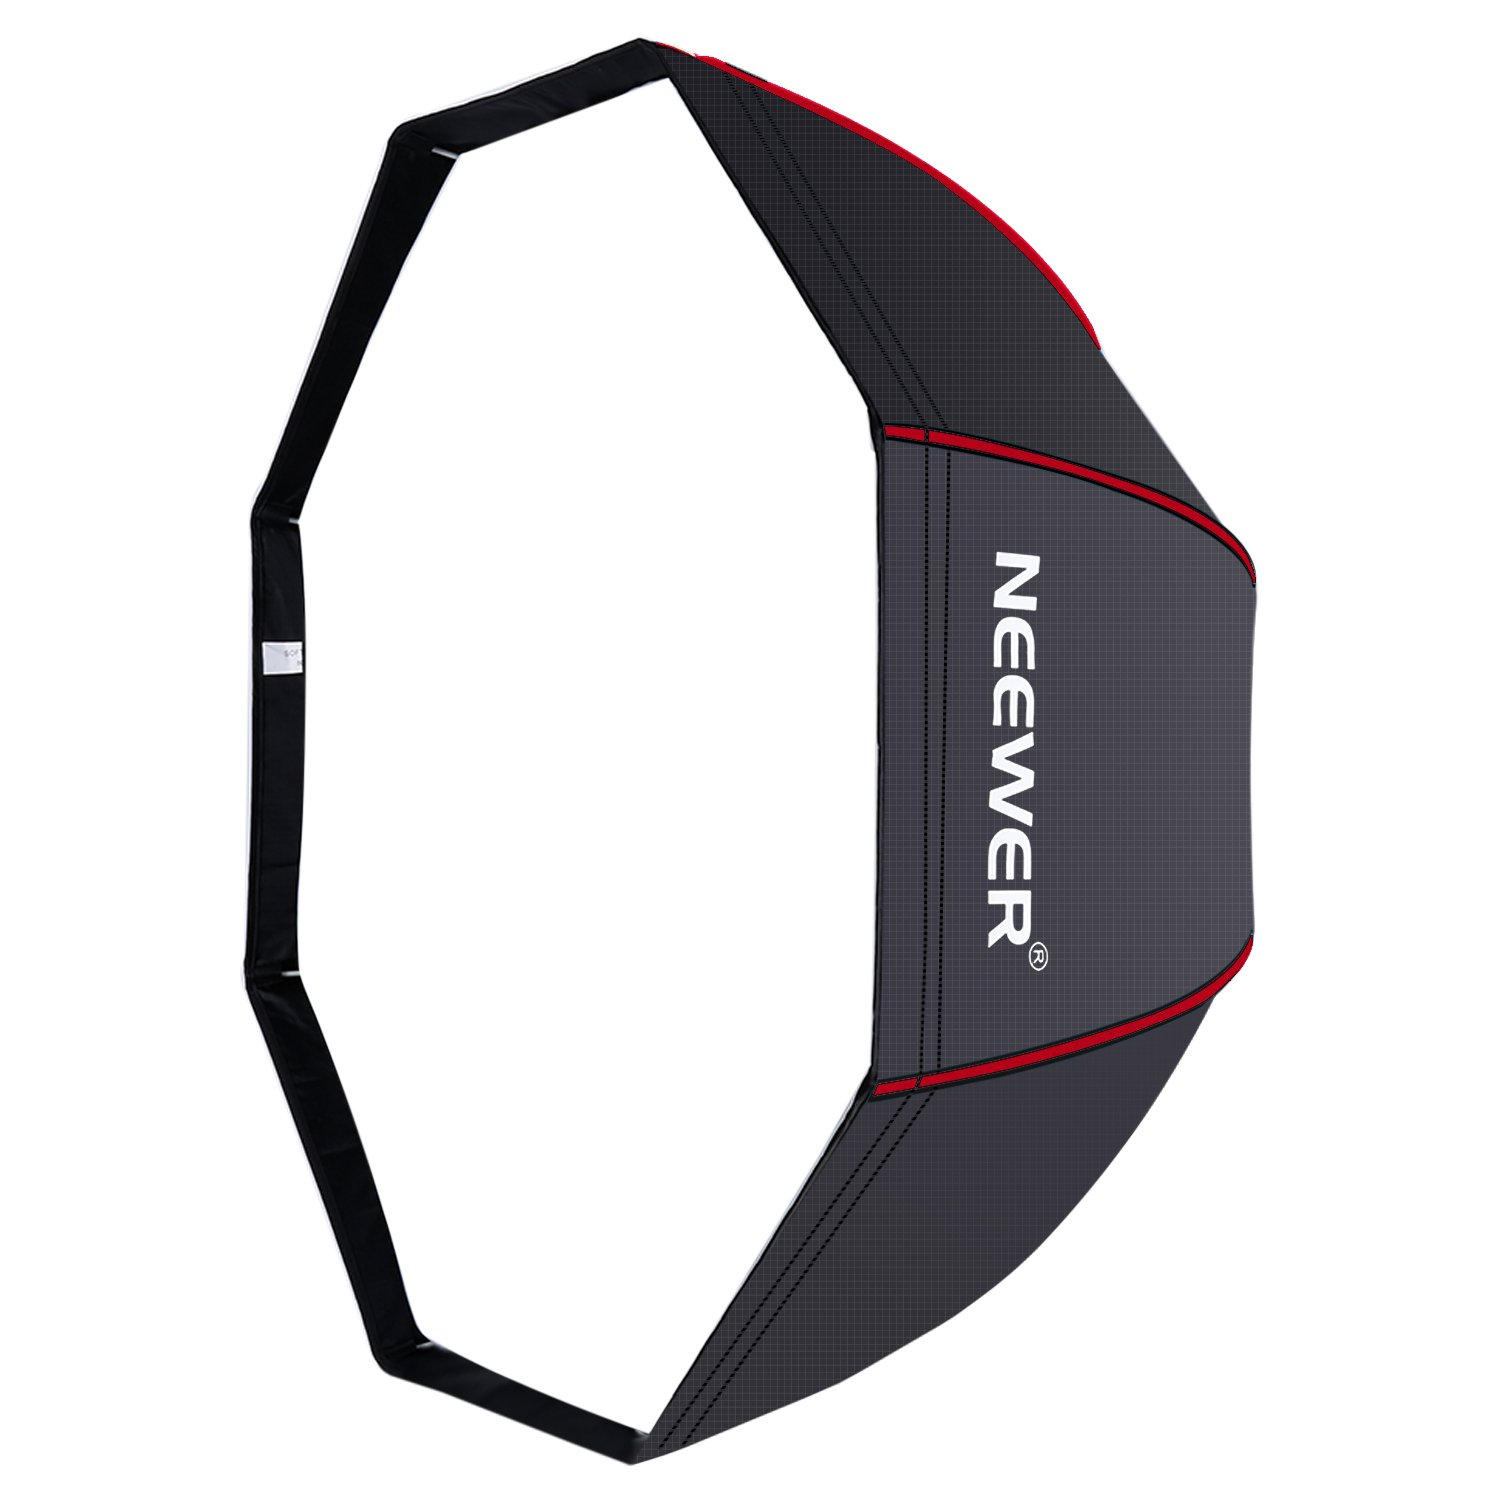 Neewer 47'/120cm Octagonal Speedlite, Studio Flash, Speedlight Umbrella Softbox with Carrying Bag for Portrait or Product Photography 10074160@@##1